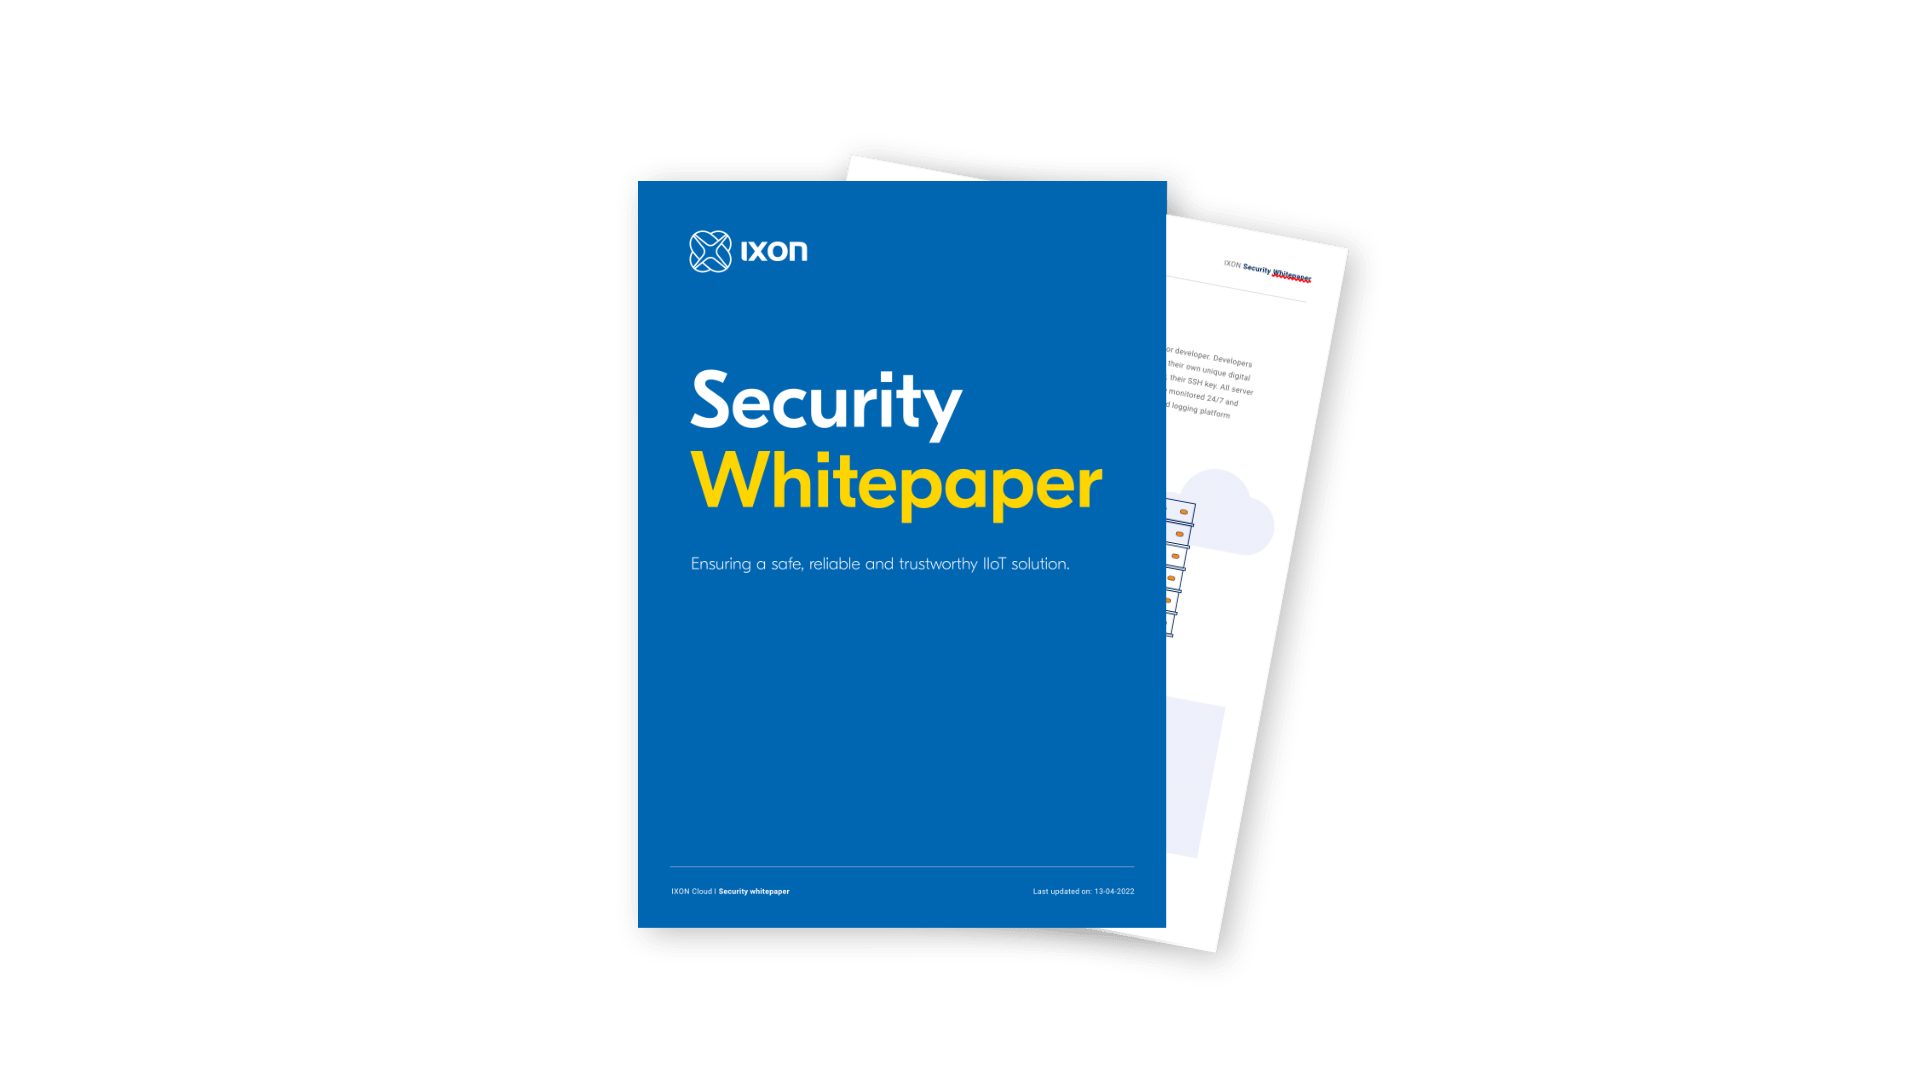 IXON Cloud Security Whitepaper